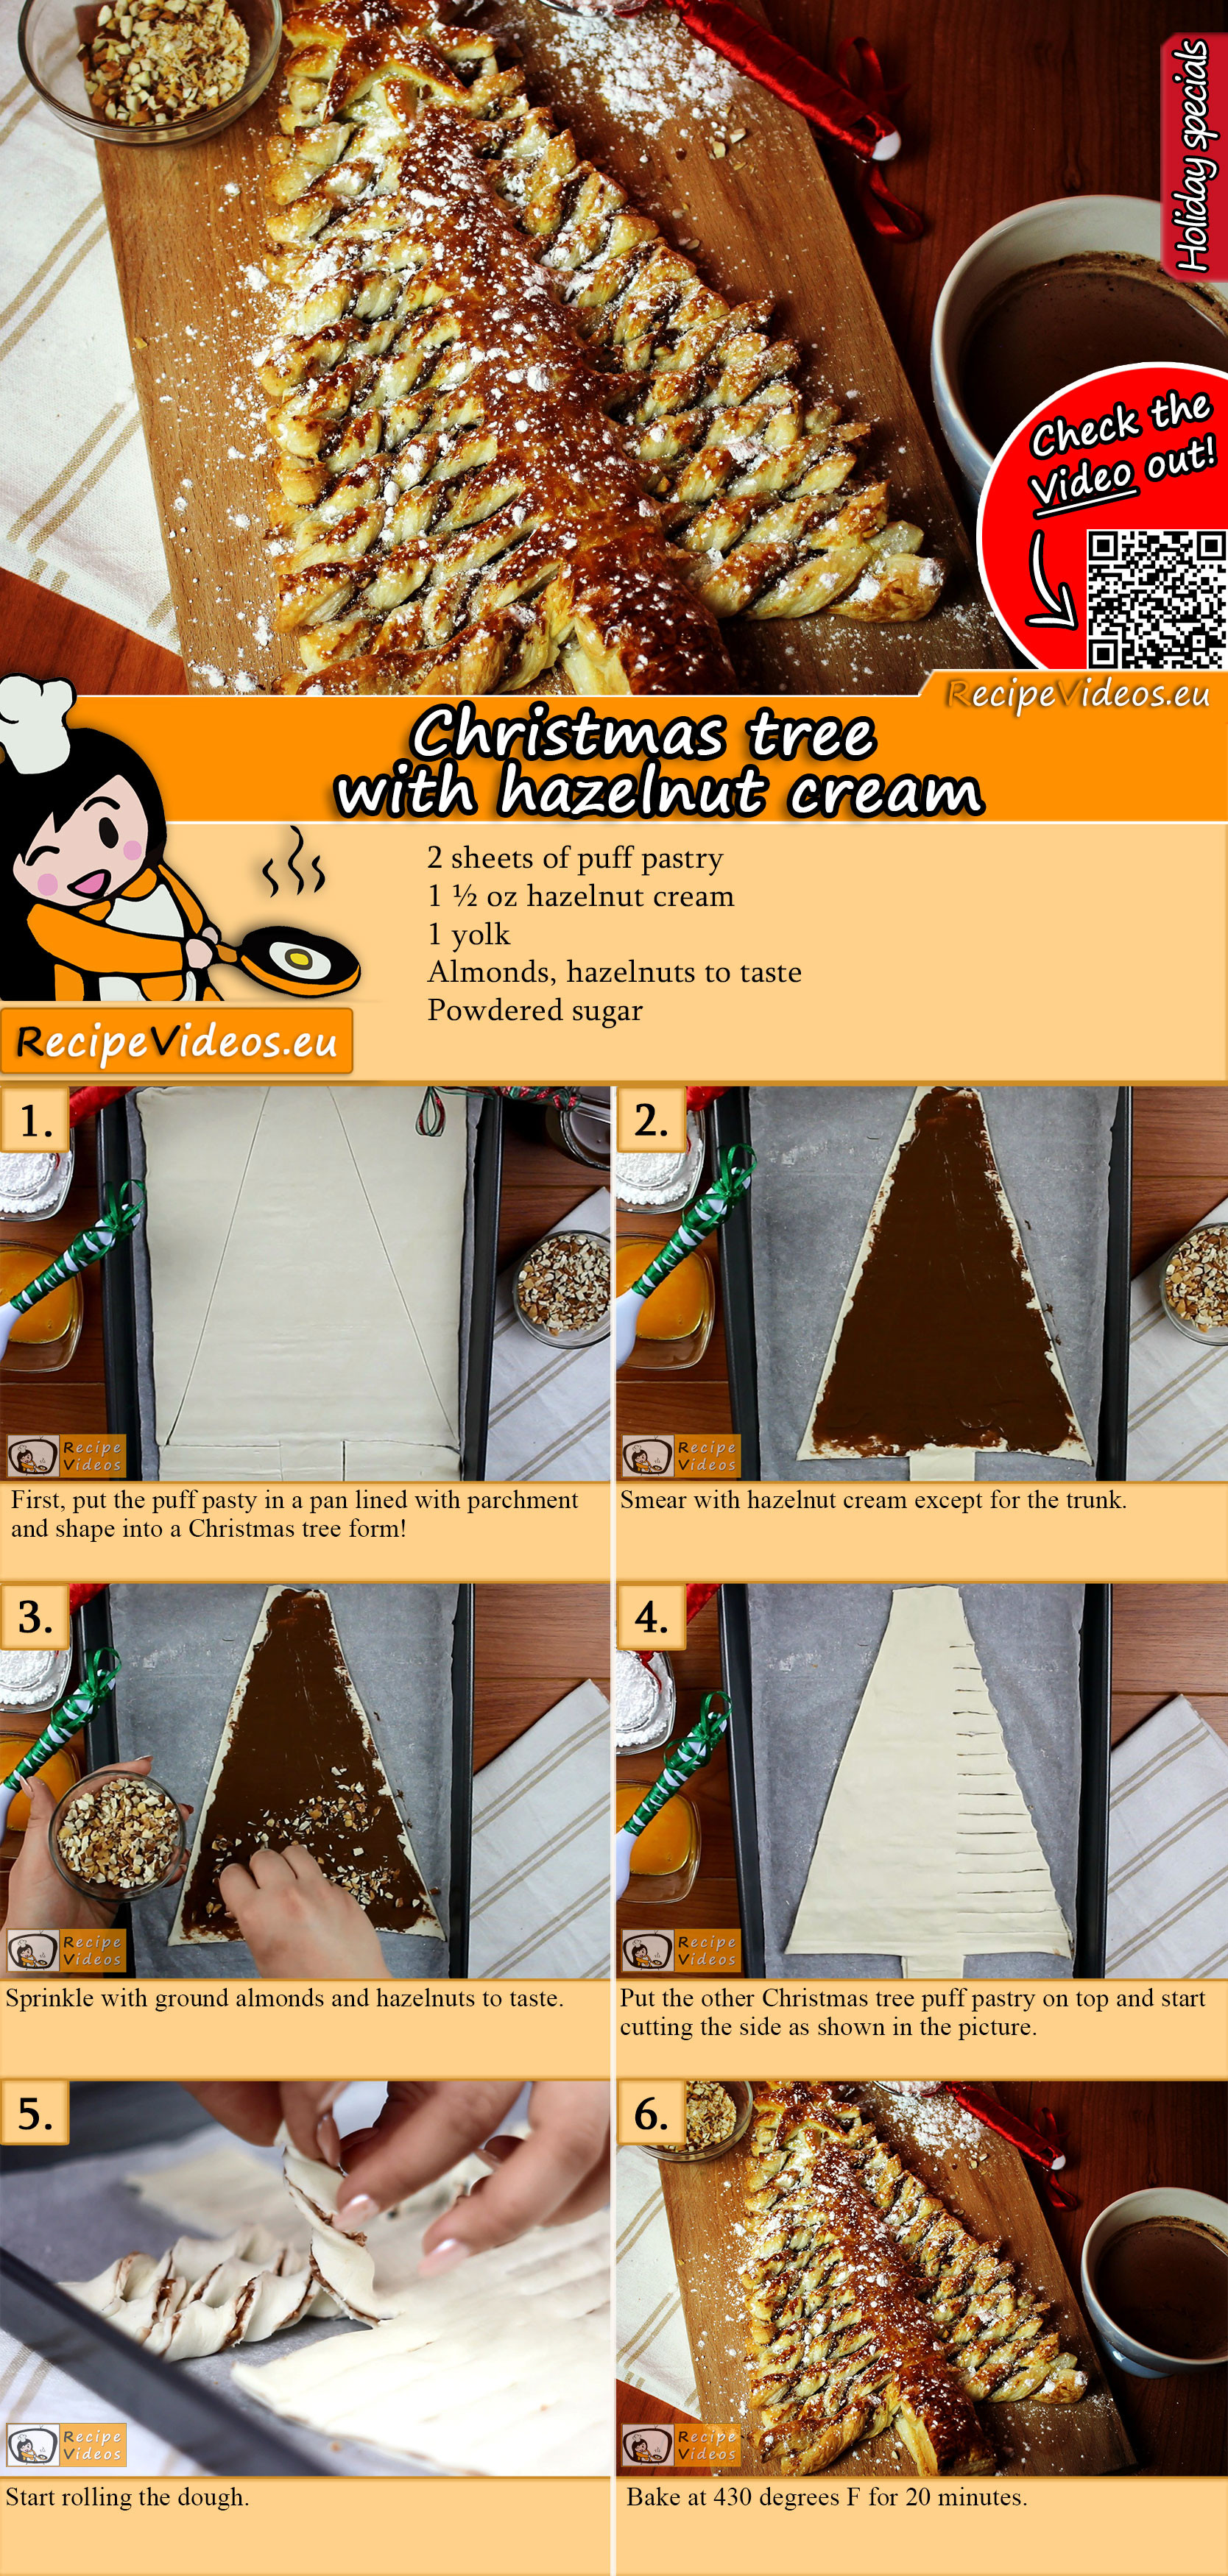 Christmas tree with hazelnut cream recipe with video